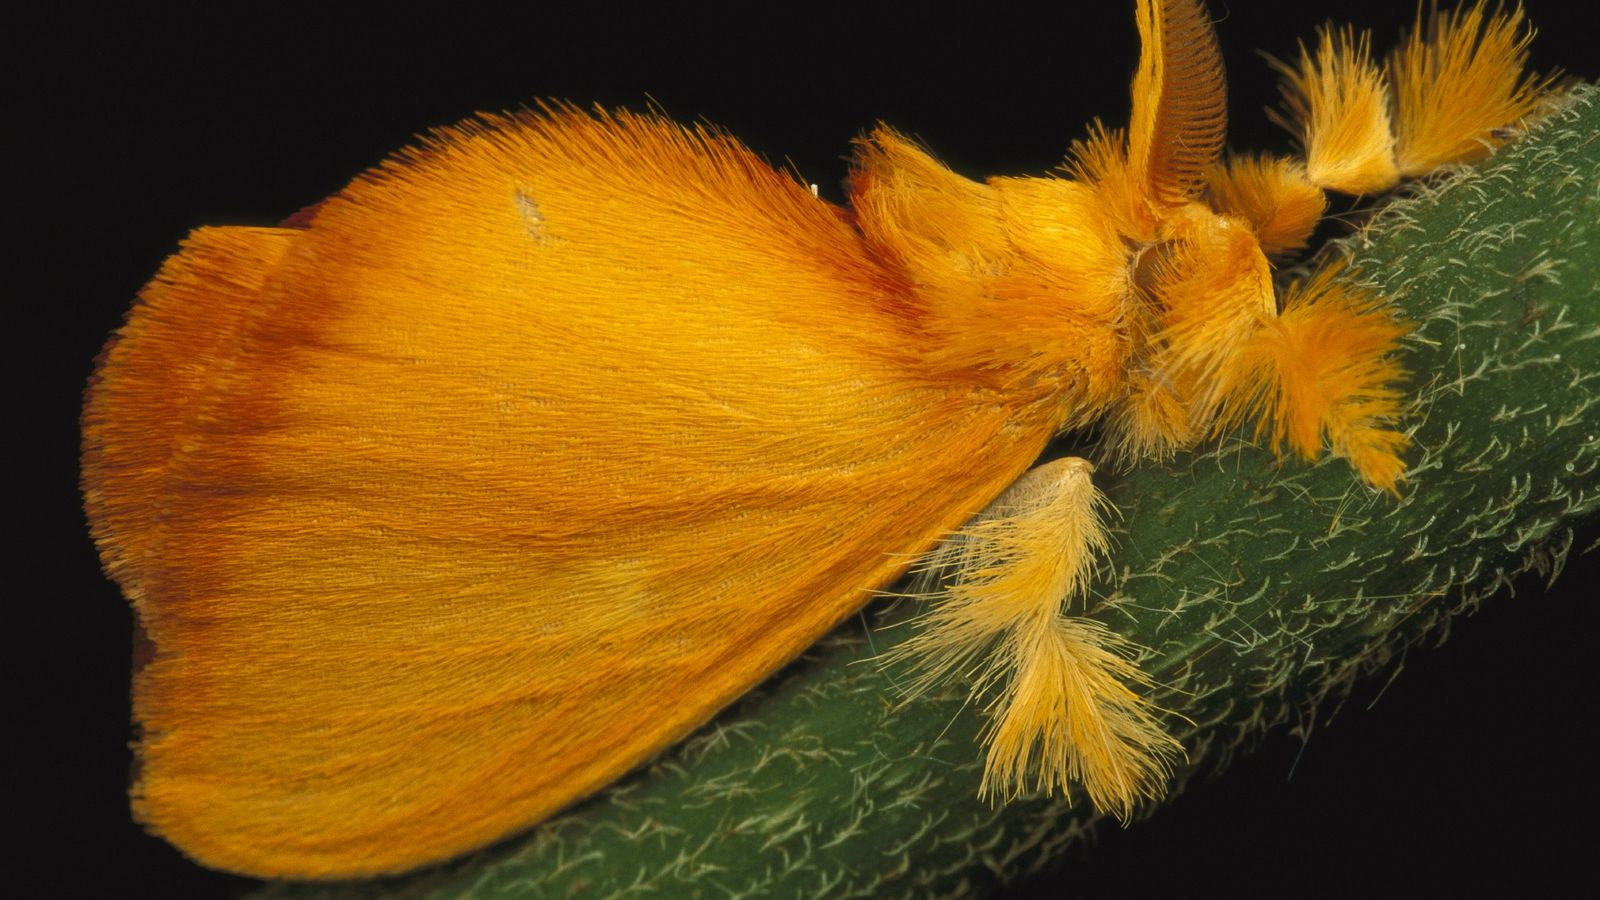 This tropical jewel moth, Acraga coa, is found mostly in Central America. Jewel moths undergo a ...